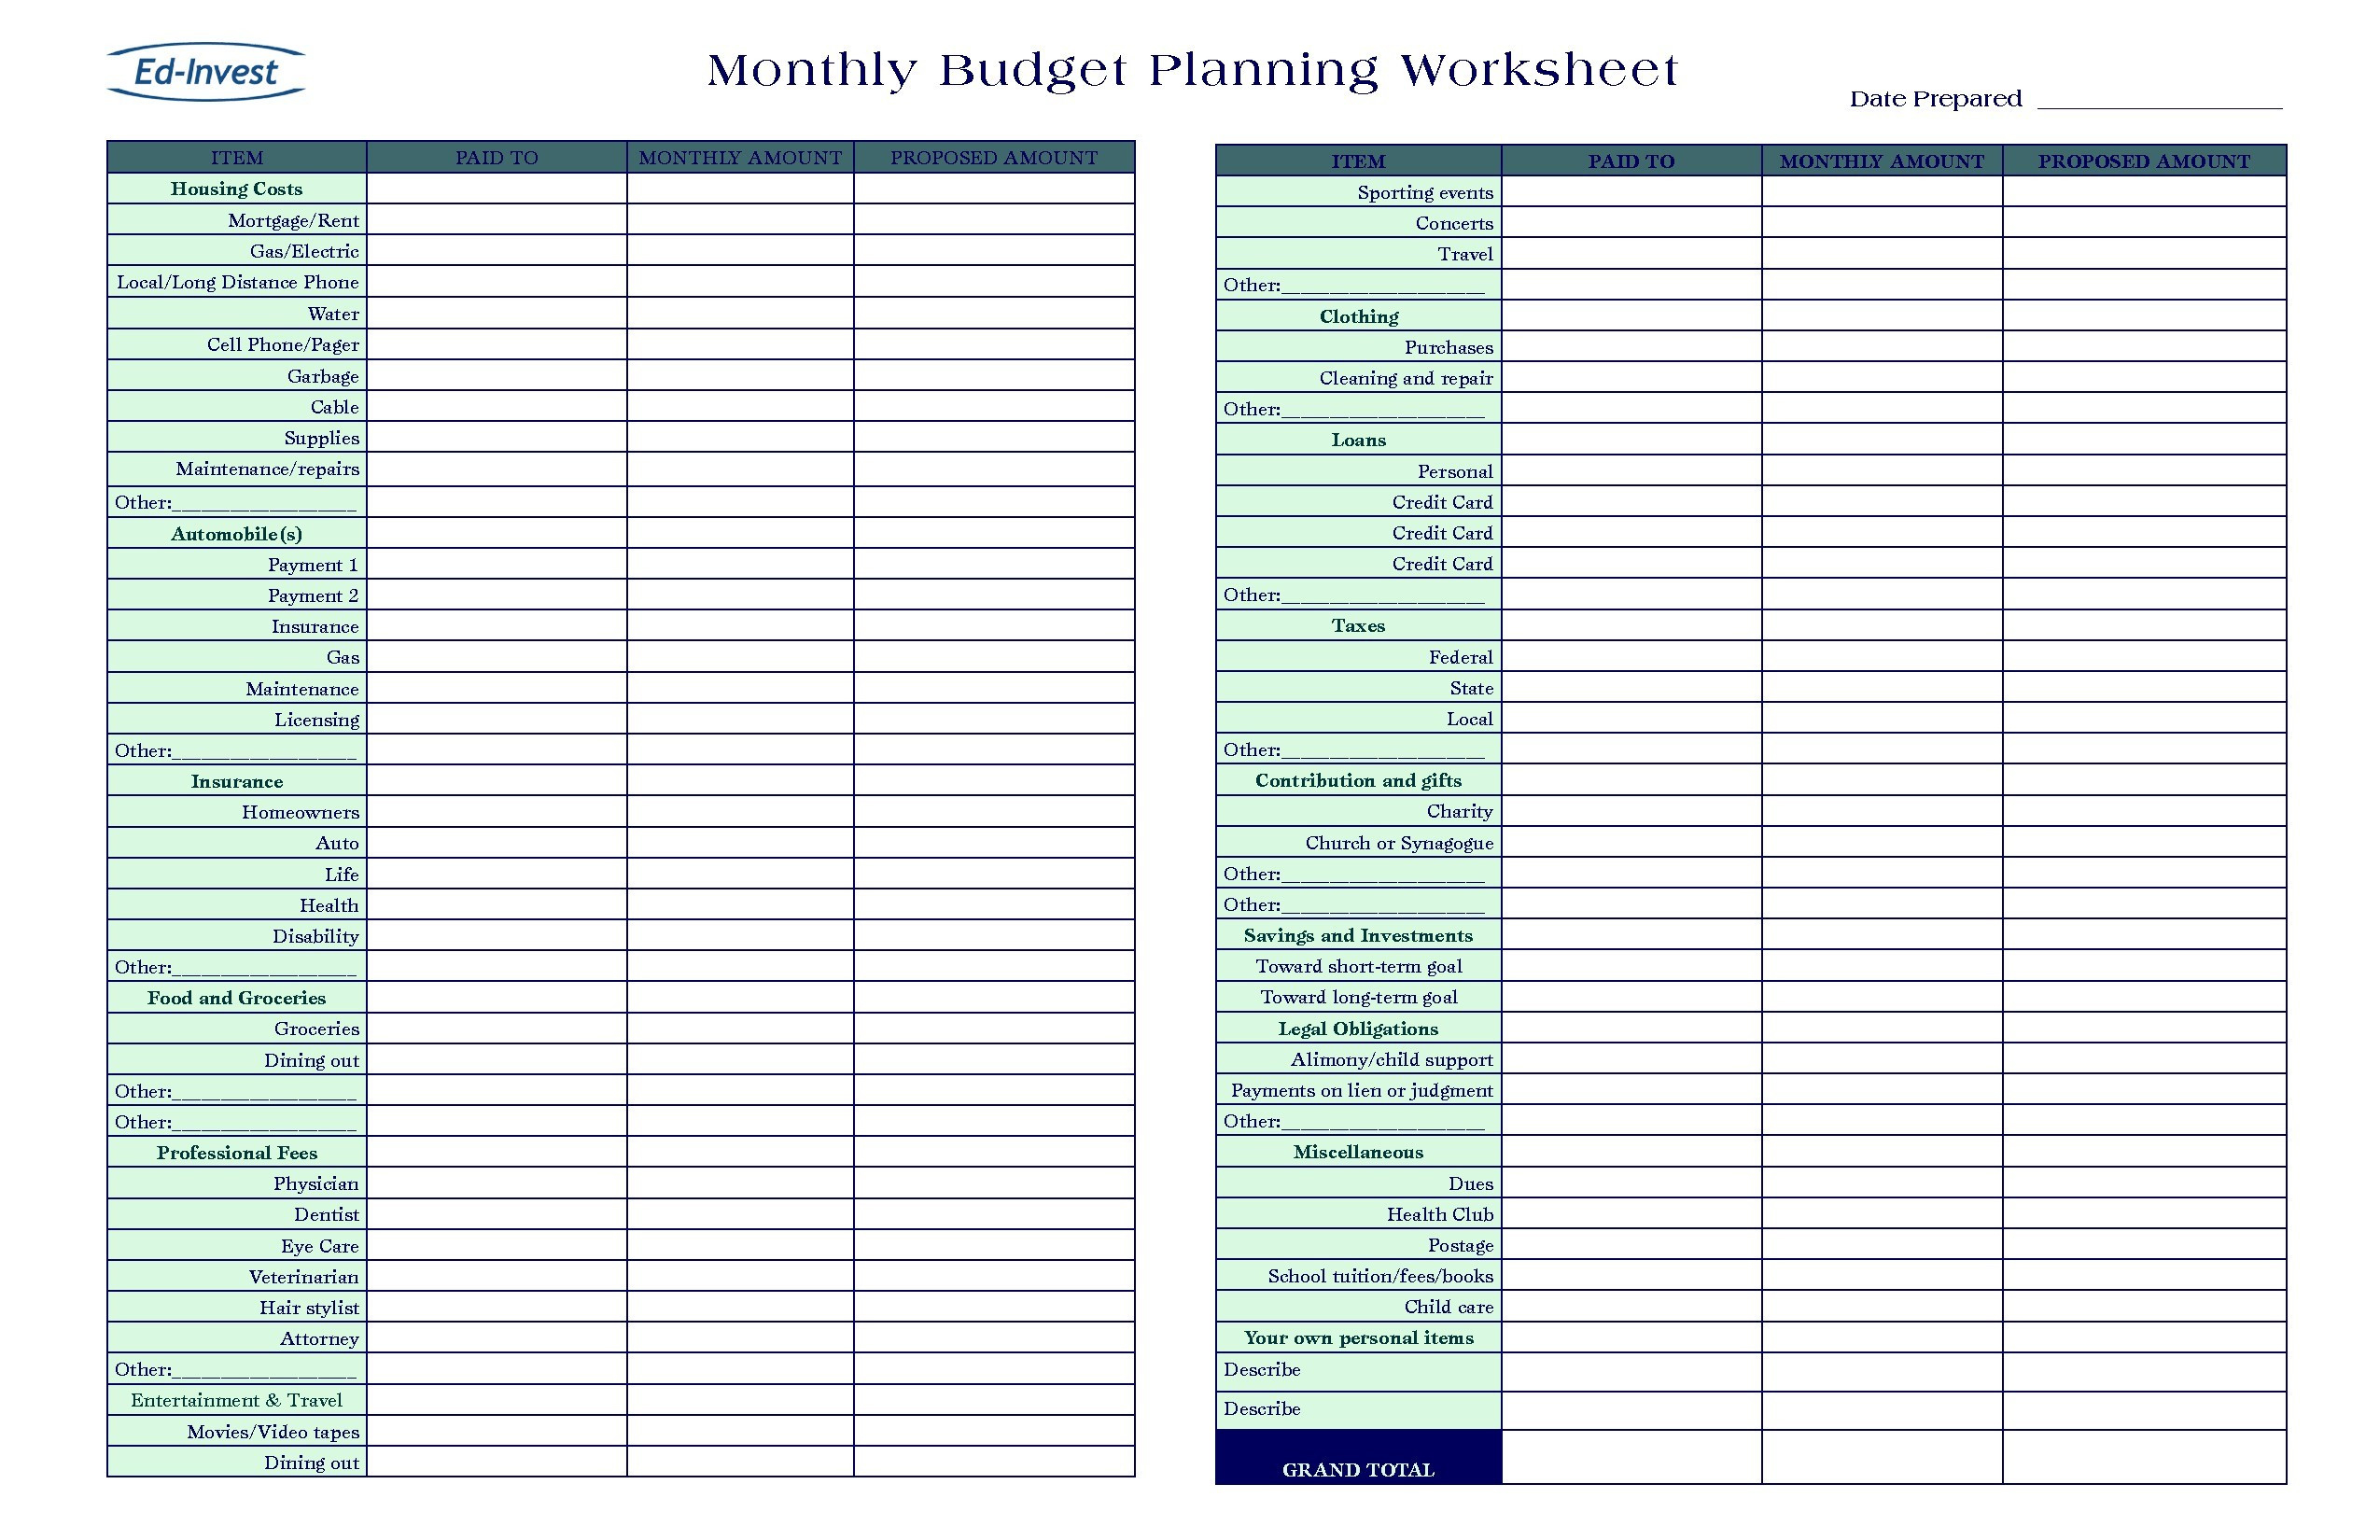 Business Expense Spreadsheet Template Free Simple Free Business For Expenses Spreadsheet Template For Small Business